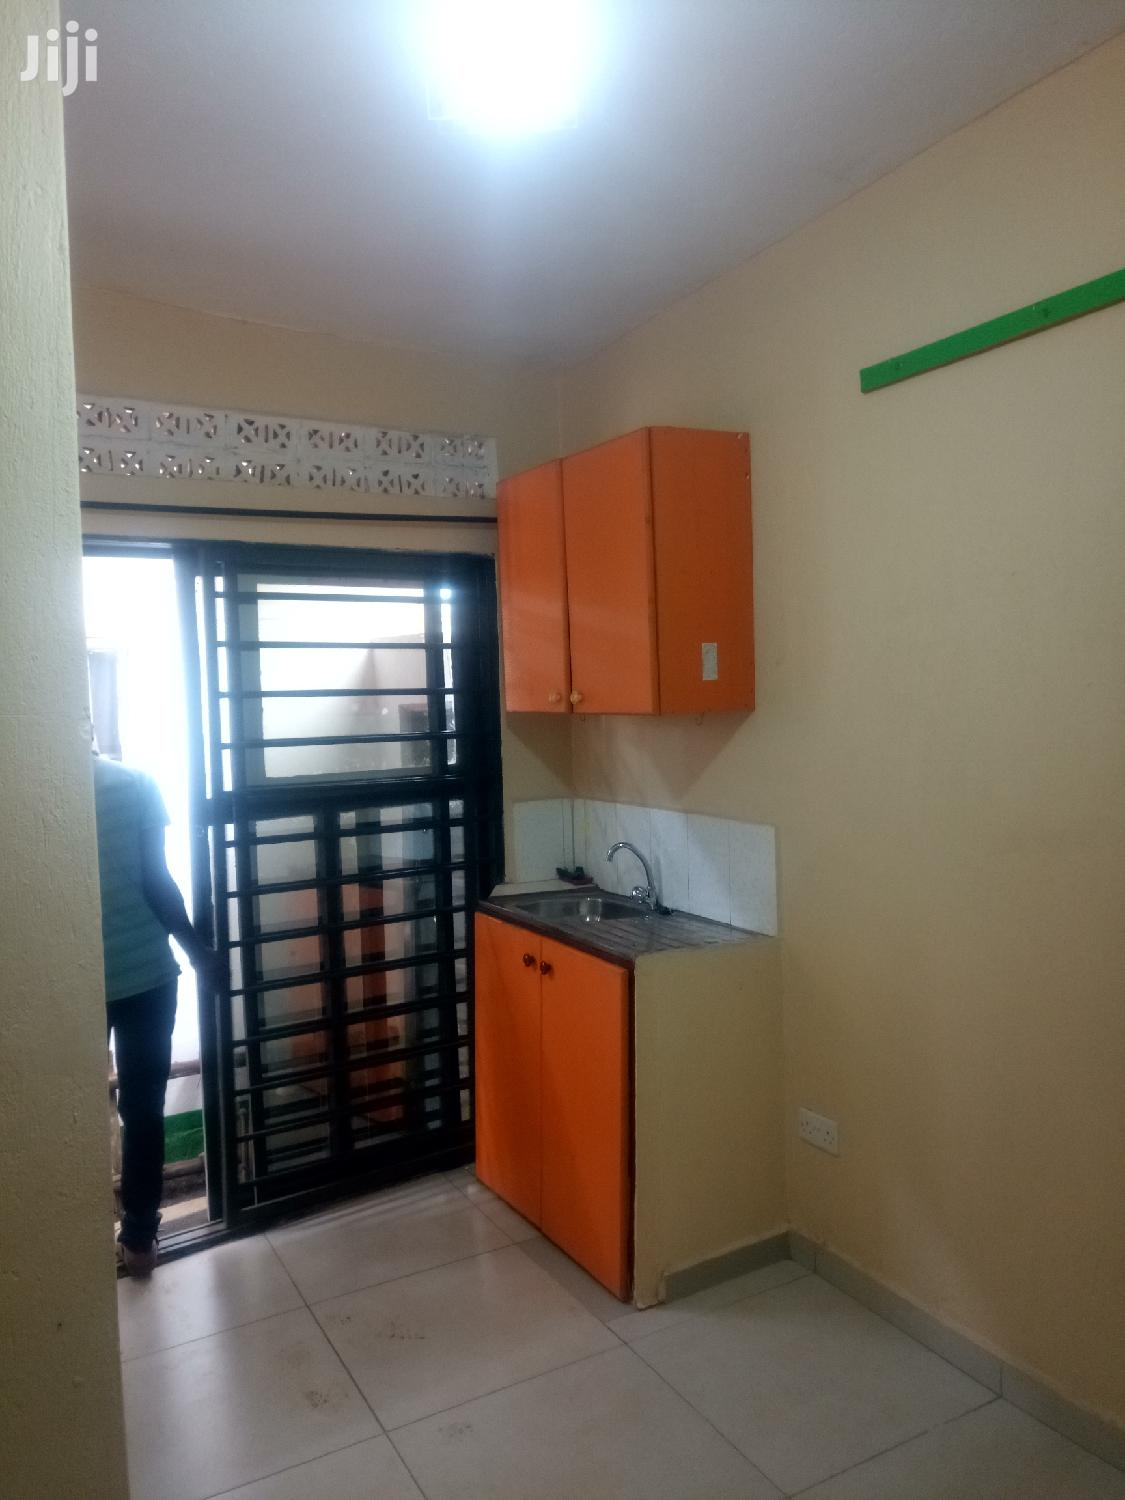 Studio Single Room for Rent in Kisaasi   Houses & Apartments For Rent for sale in Kampala, Central Region, Uganda